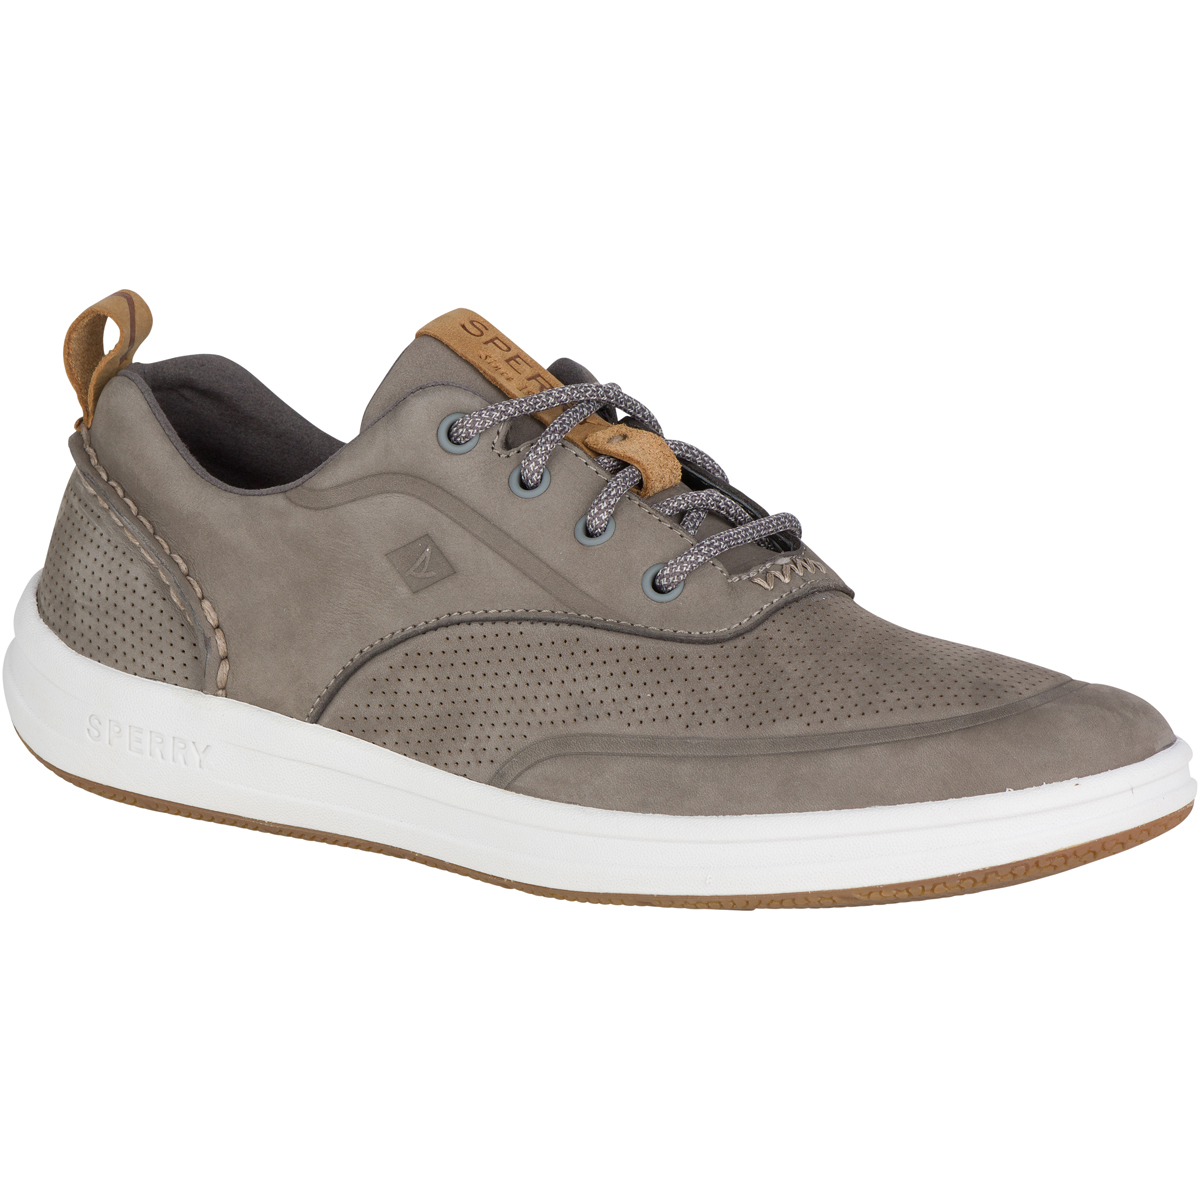 SPERRY MEN'S GAMEFISH CVO SNEAKER (STS15300)